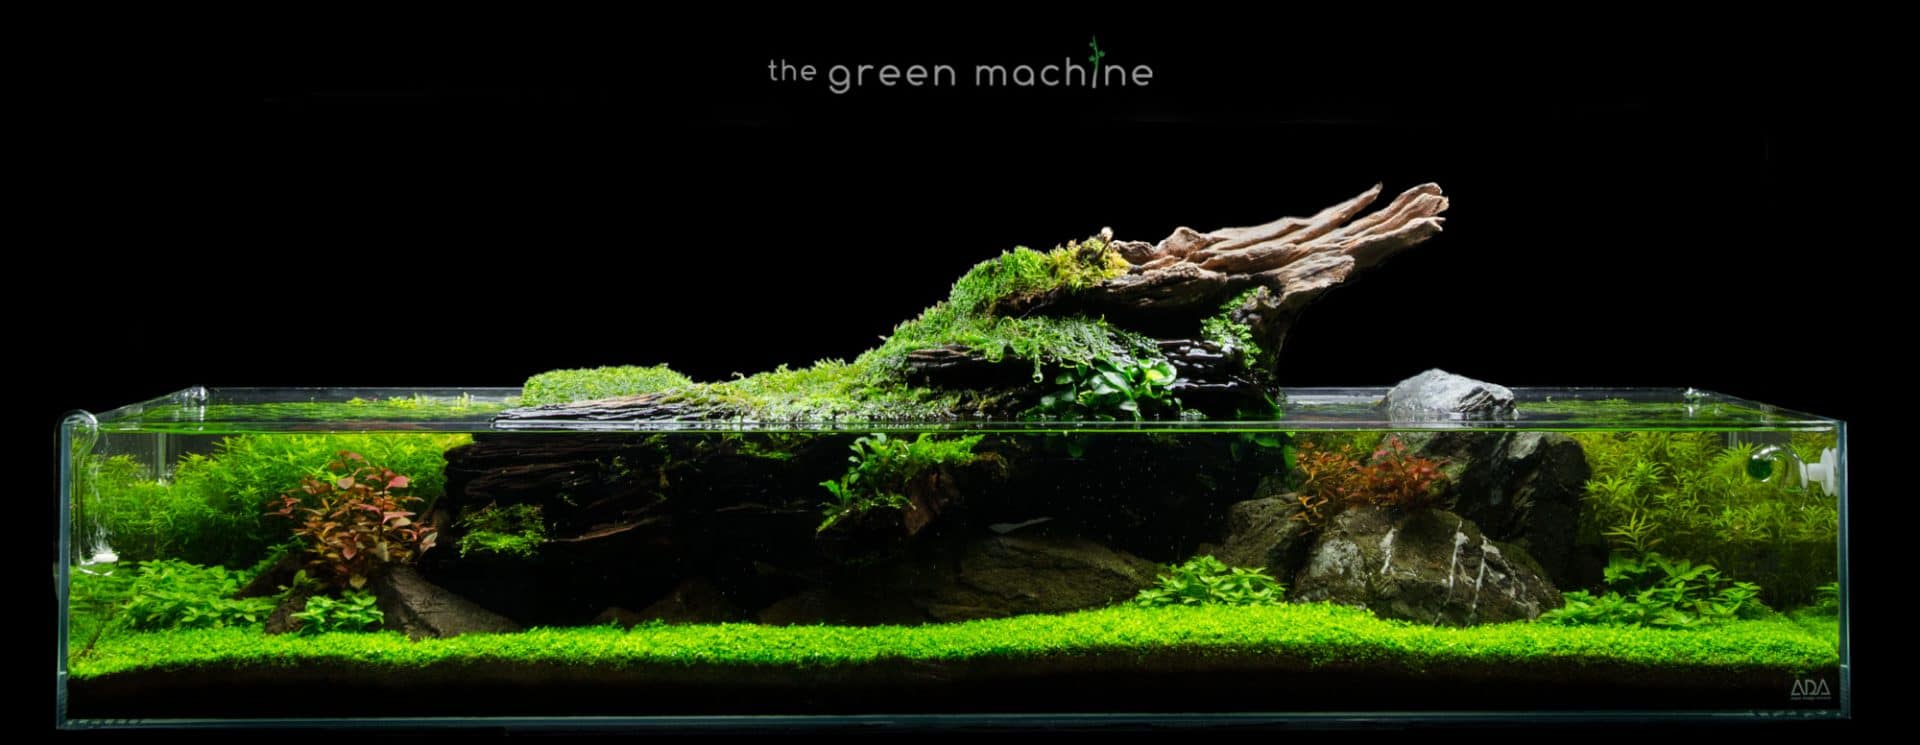 The Green Machine Aquascaping Shop Aquarium Plants Supplies Planted Tank Videos Tutorials Articles